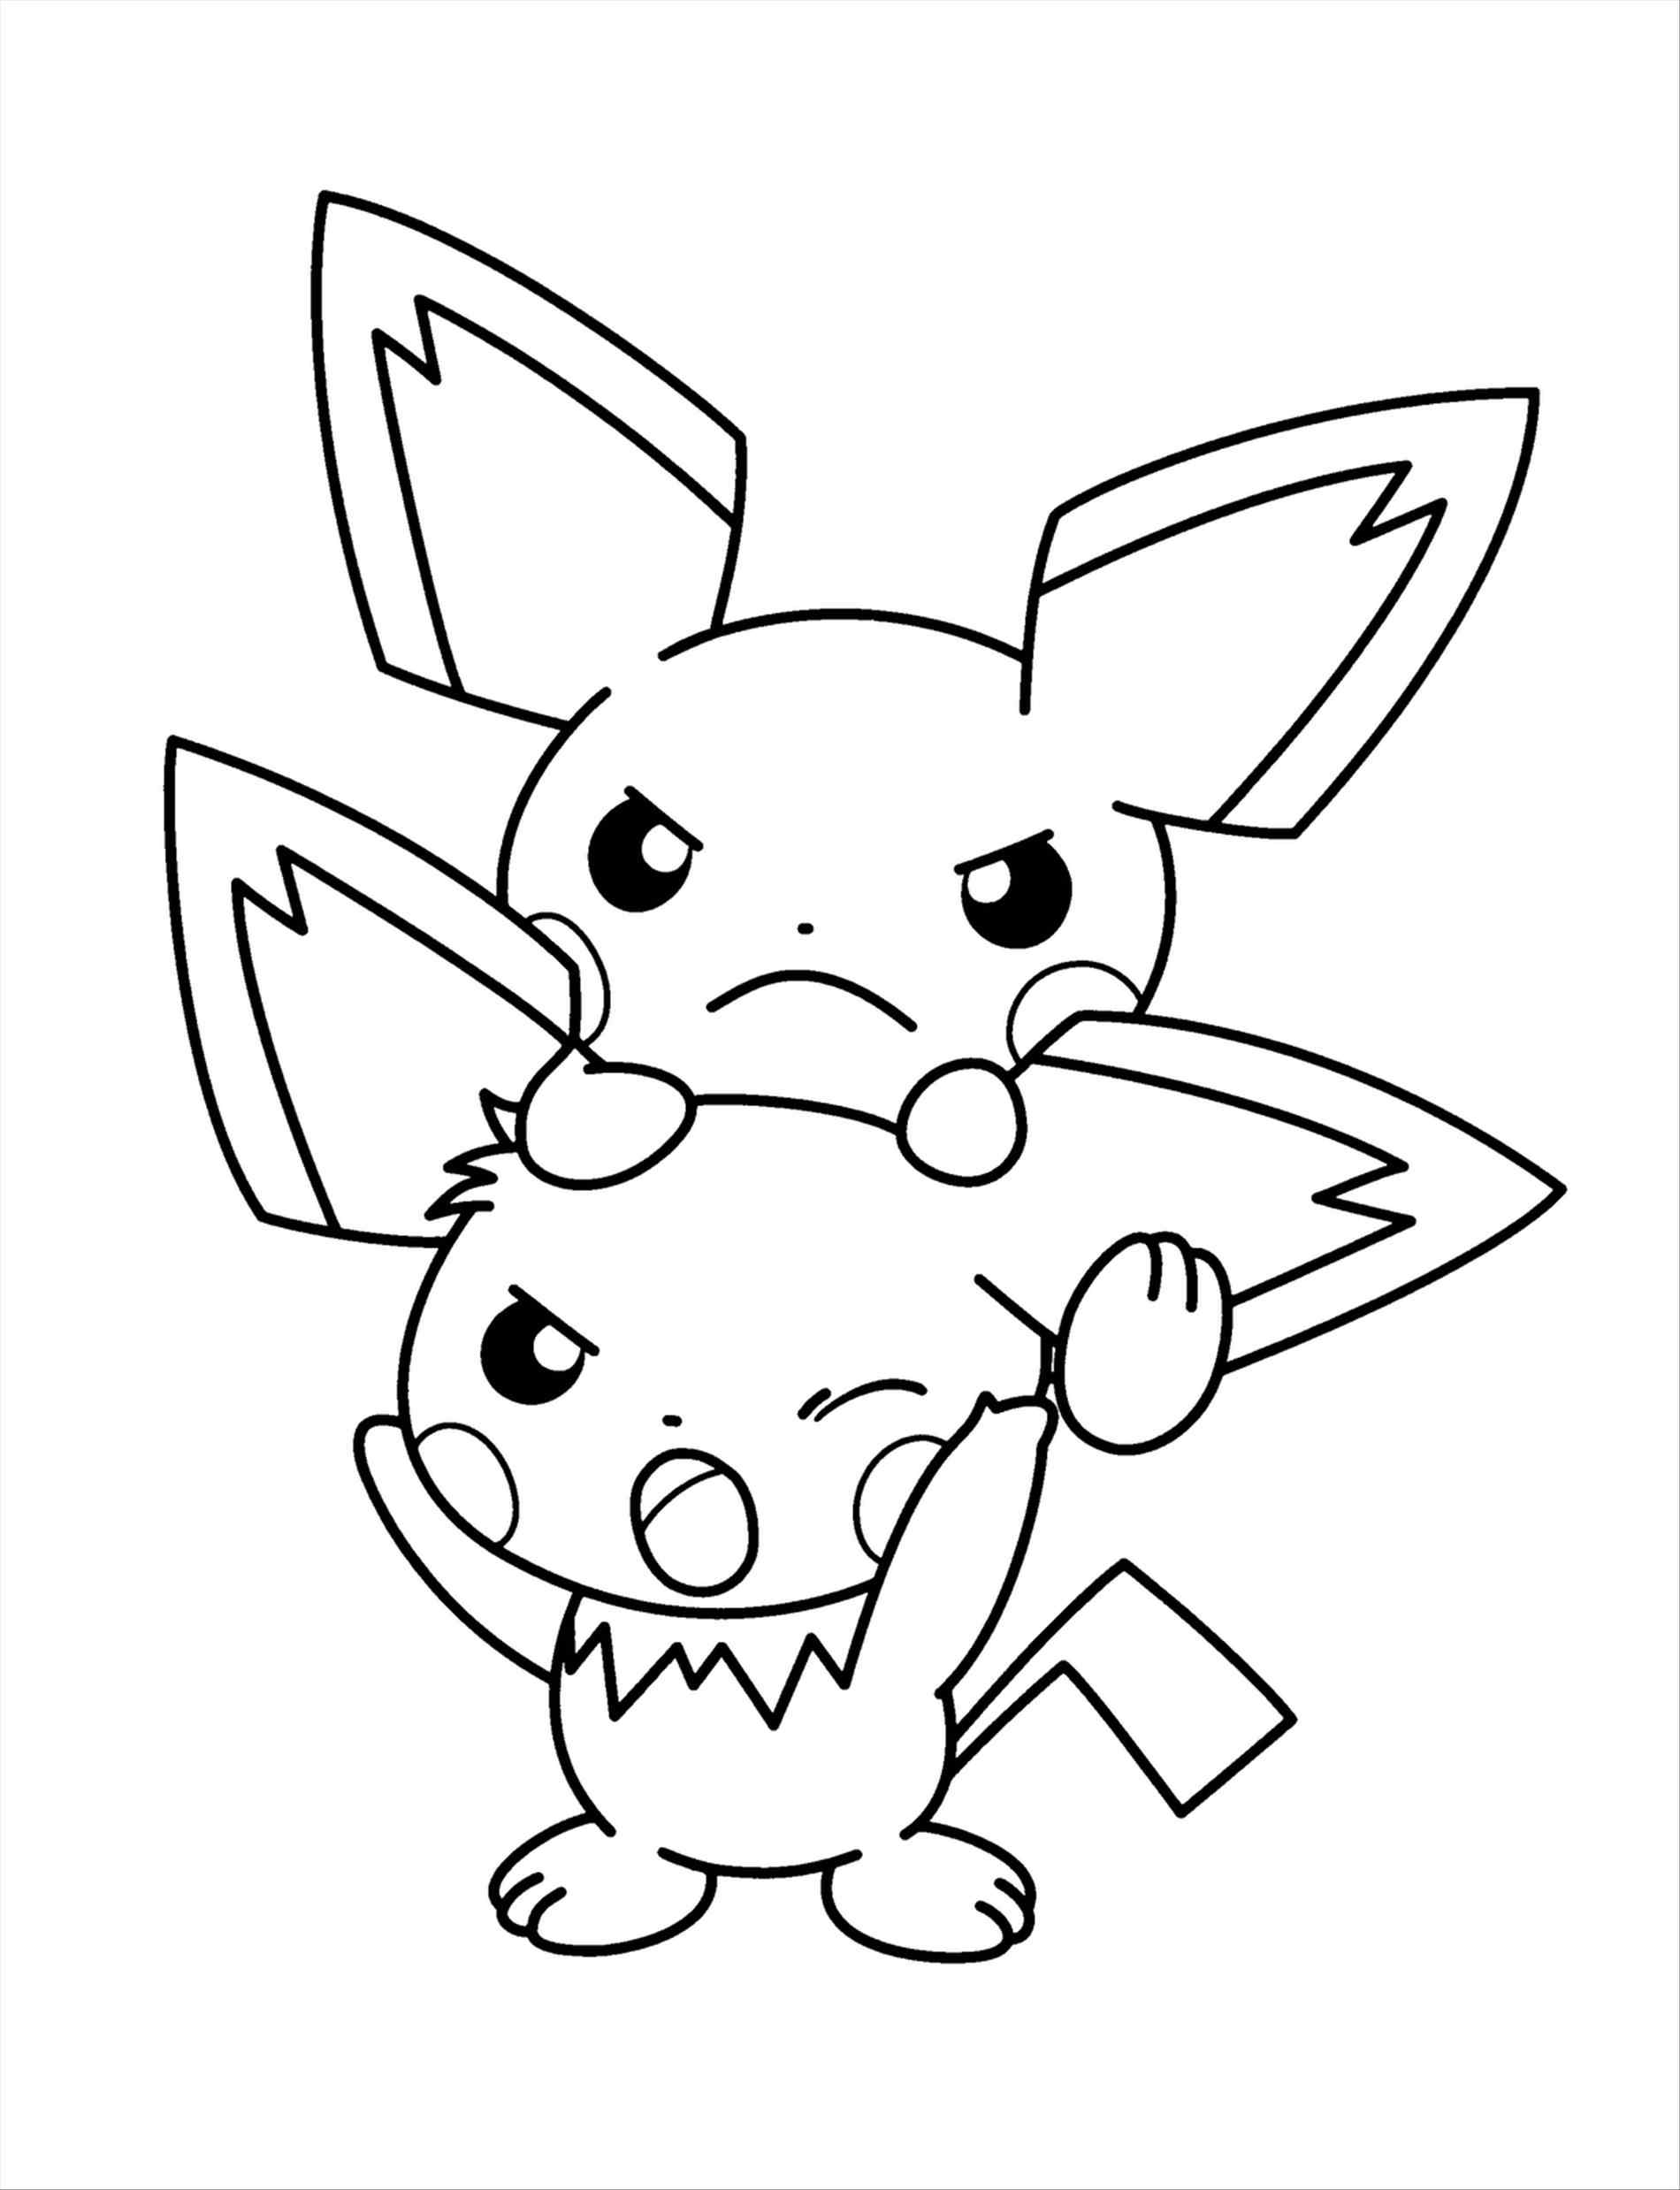 pikachu drawing coloring pages cute pikachu coloring pages at getdrawings free download pikachu pages drawing coloring